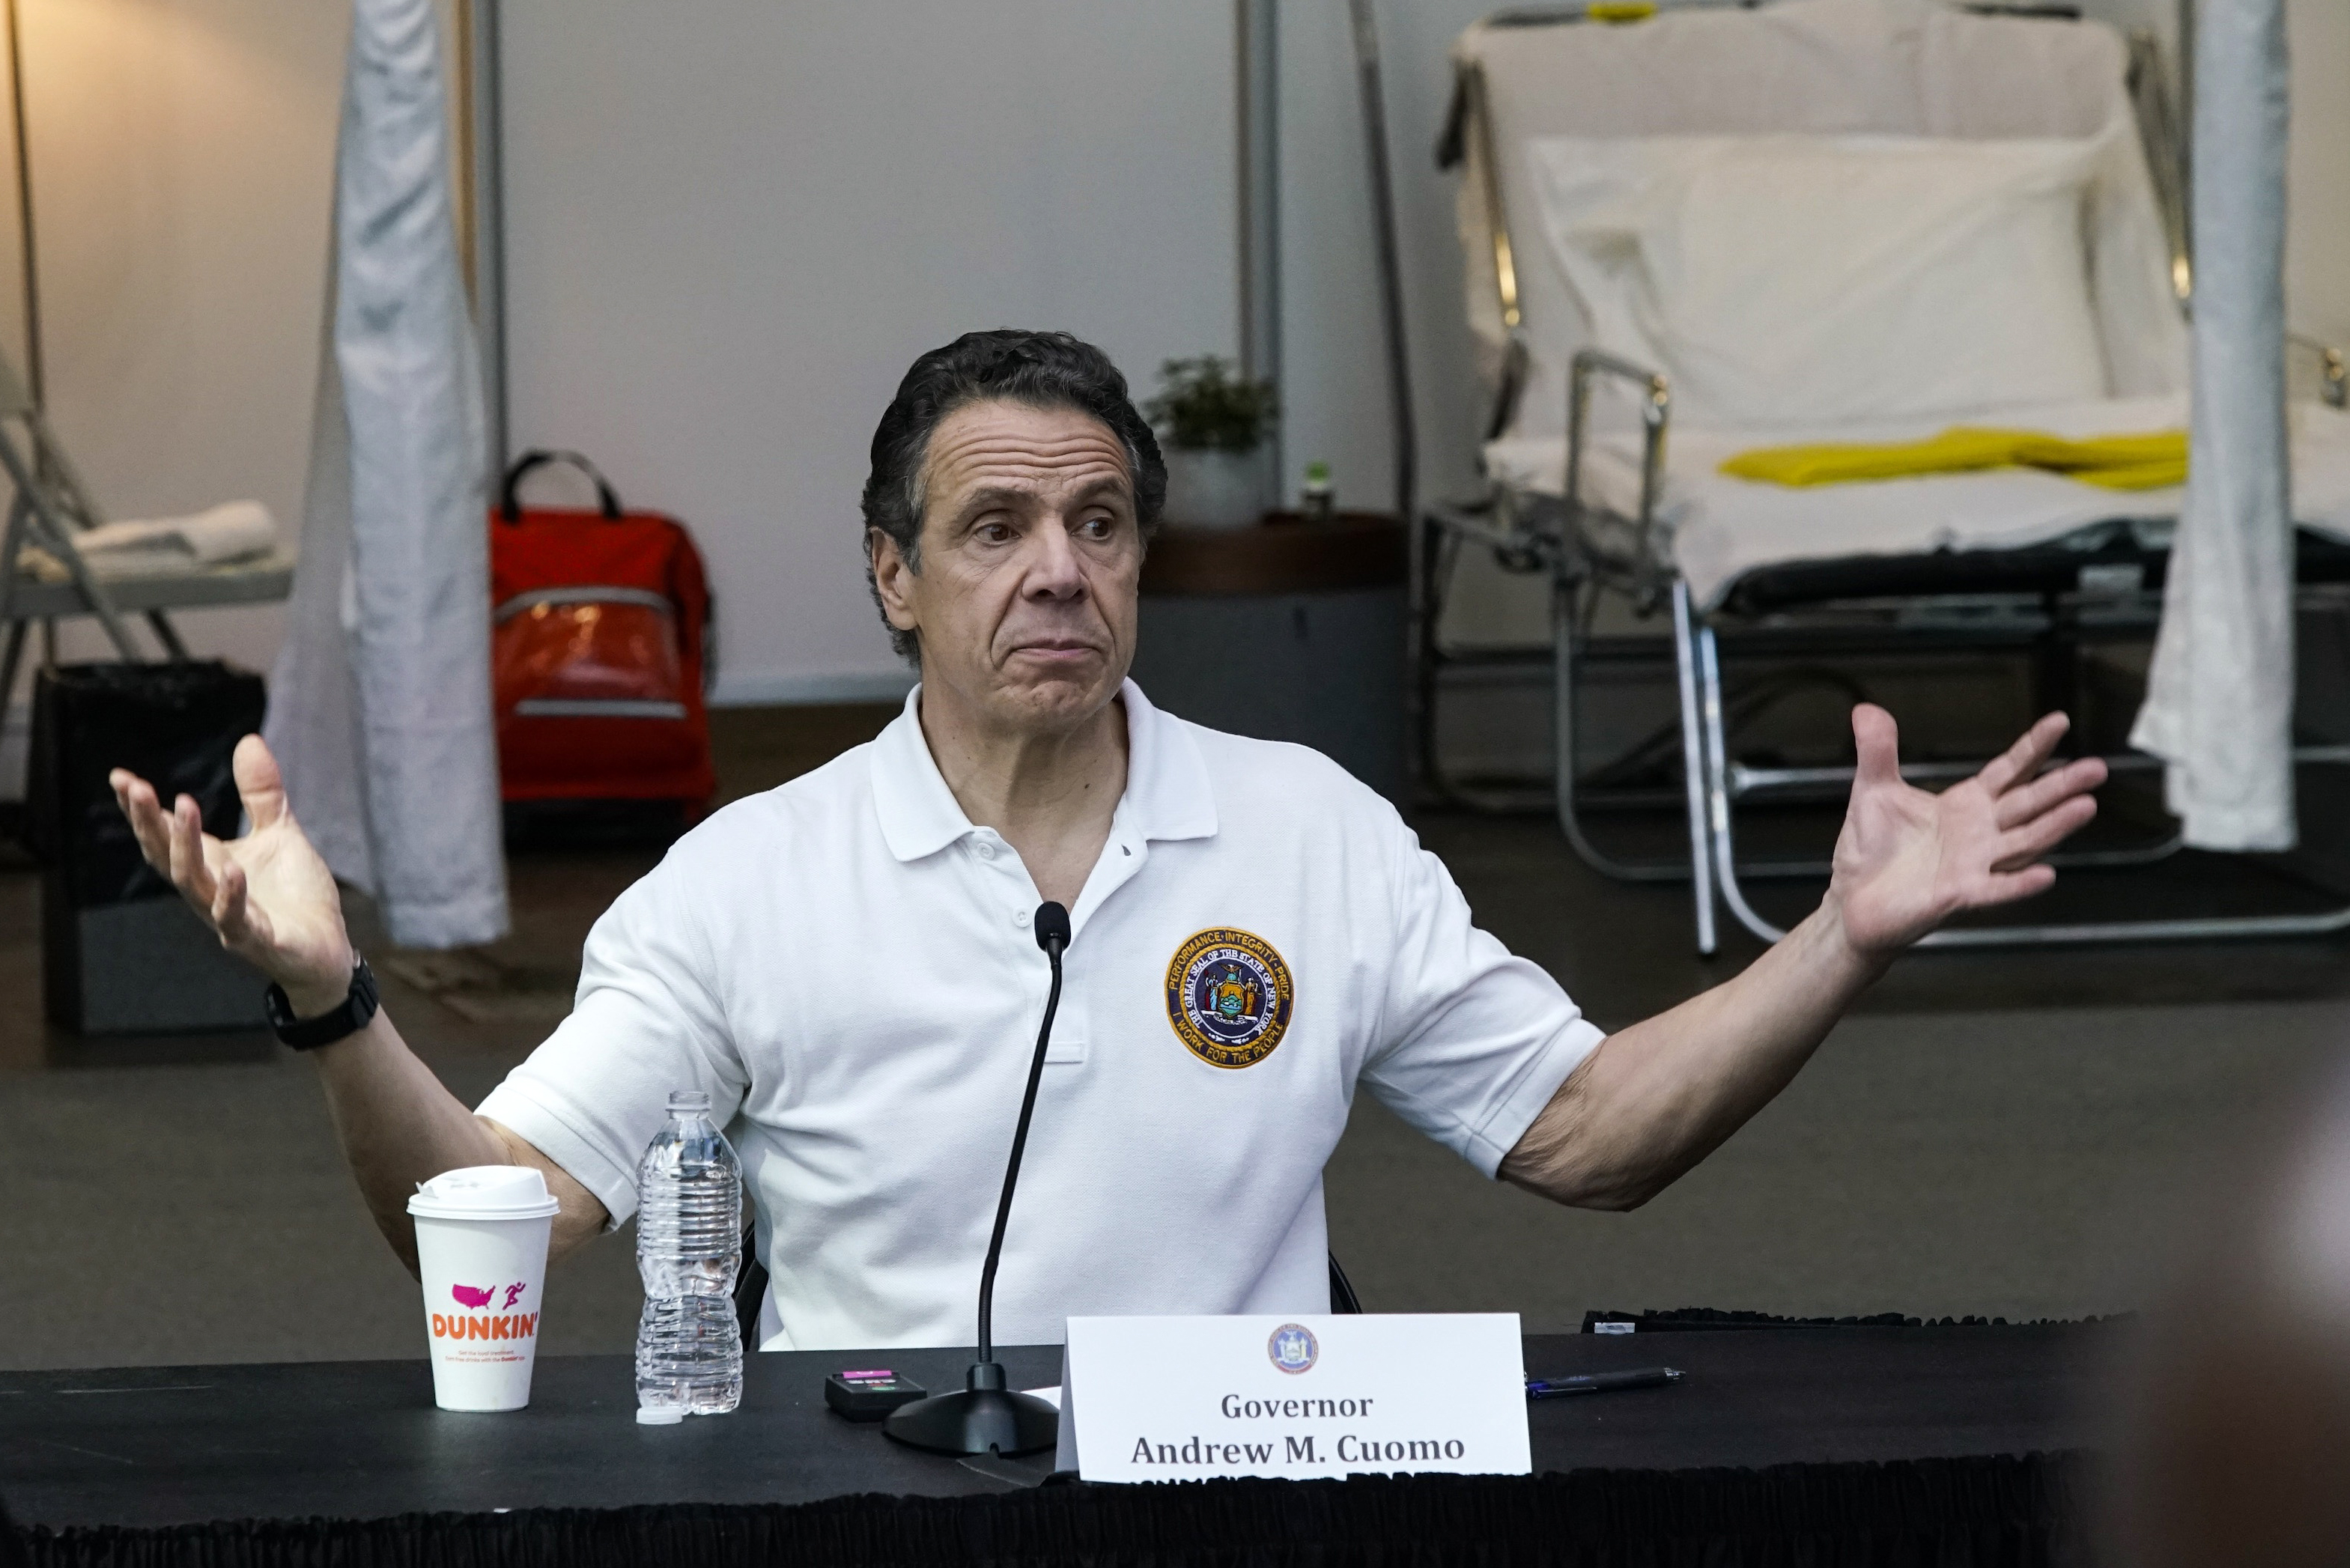 NEW YORK, NY - MARCH 27: New York Gov Andrew Cuomo gives a daily coronavirus press conference in front of media and National Guard members at the Jacob K. Javits Convention Center, which is being turned into a hospital to help fight coronavirus cases on March 27, 2020 in New York City. Cuomo will be requesting authorization for four additional hospital sites amid COVID-19 coronavirus outbreak. (Photo by Eduardo Munoz Alvarez/Getty Images)